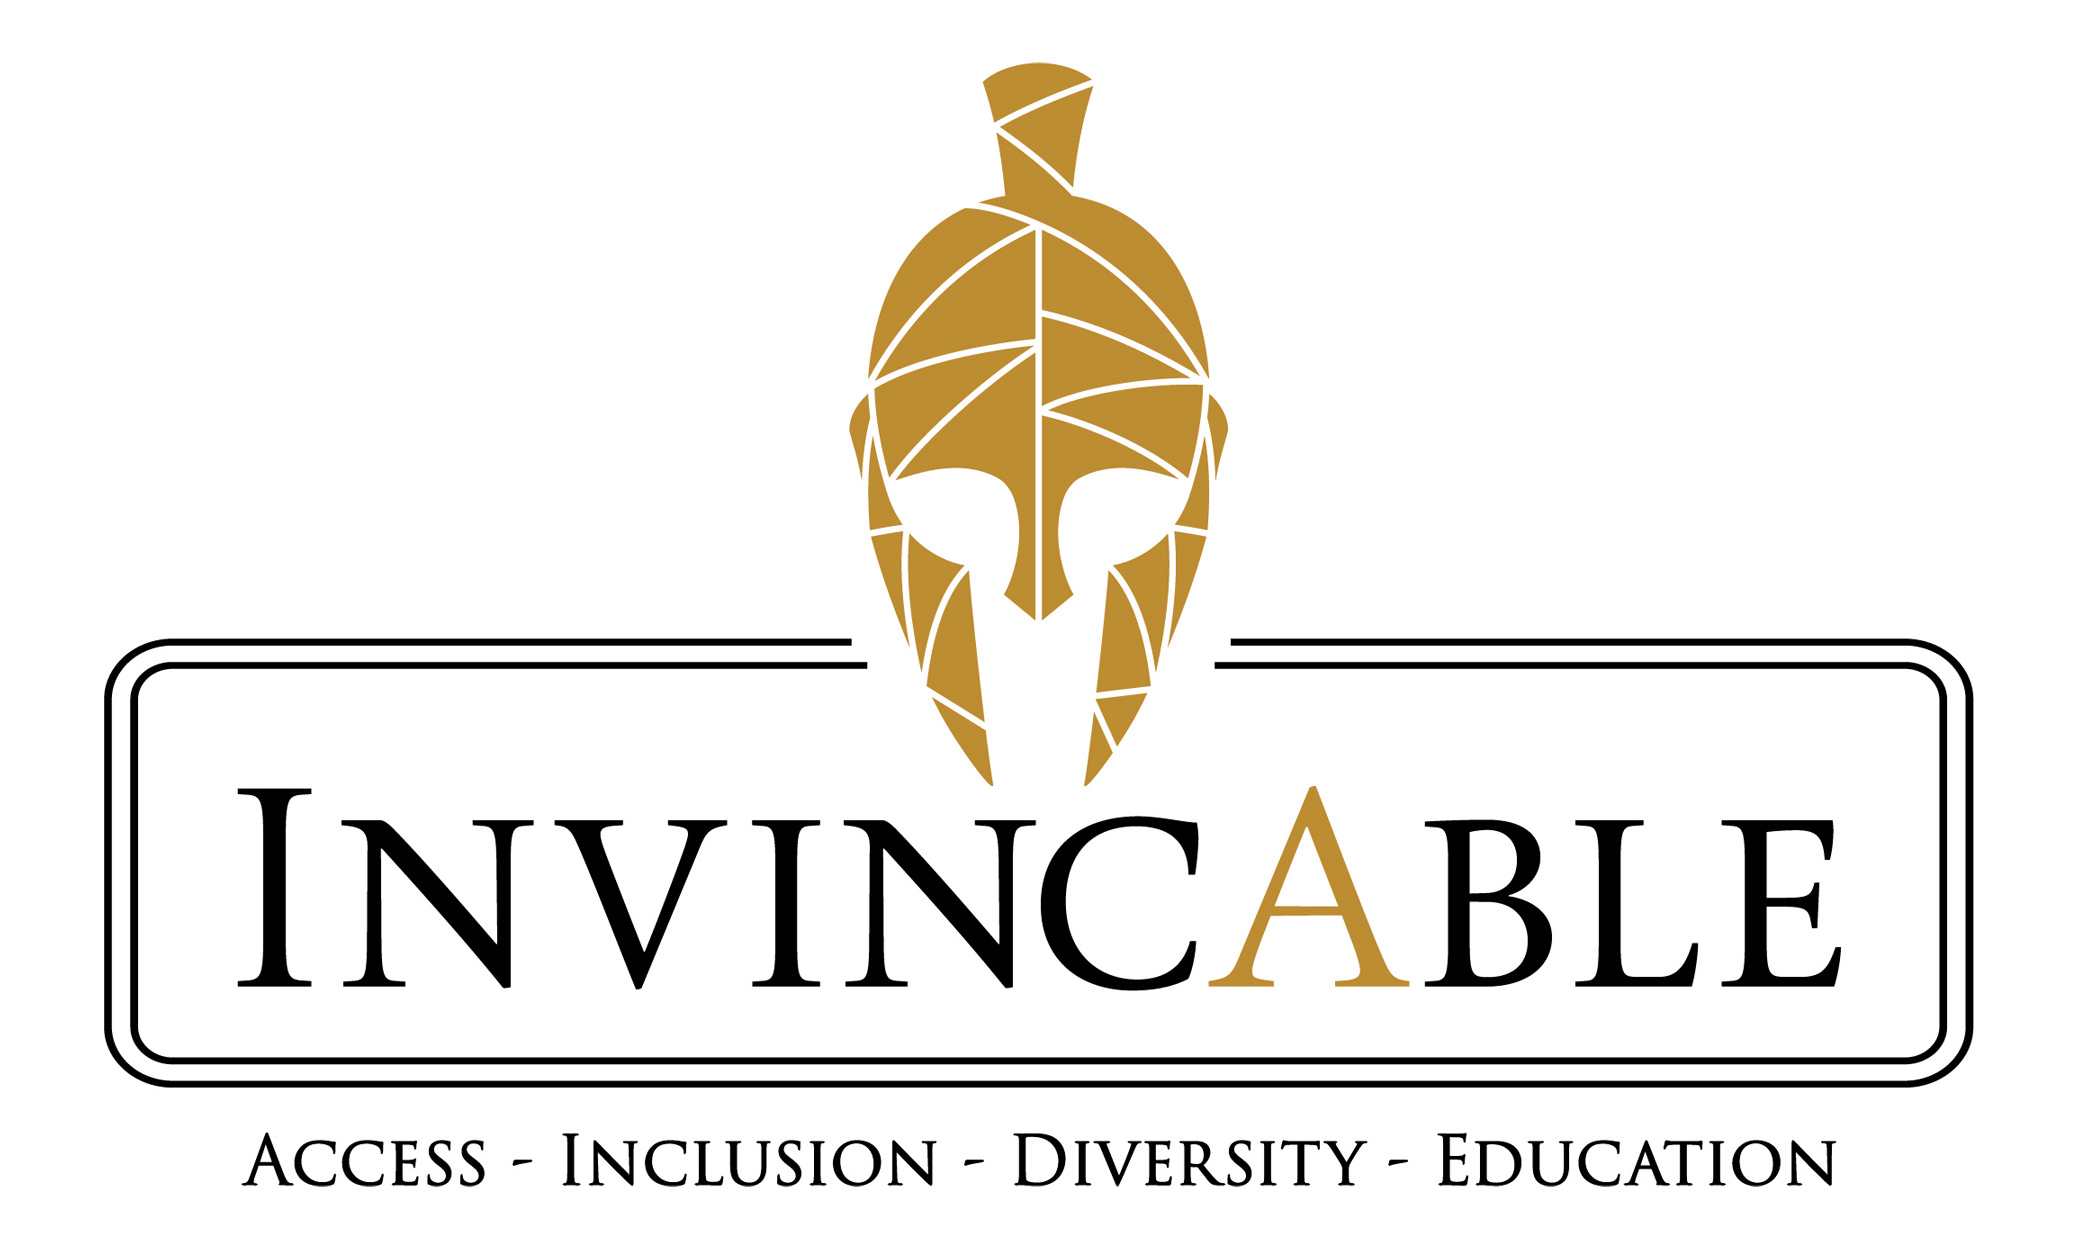 InvincAble Wording Added